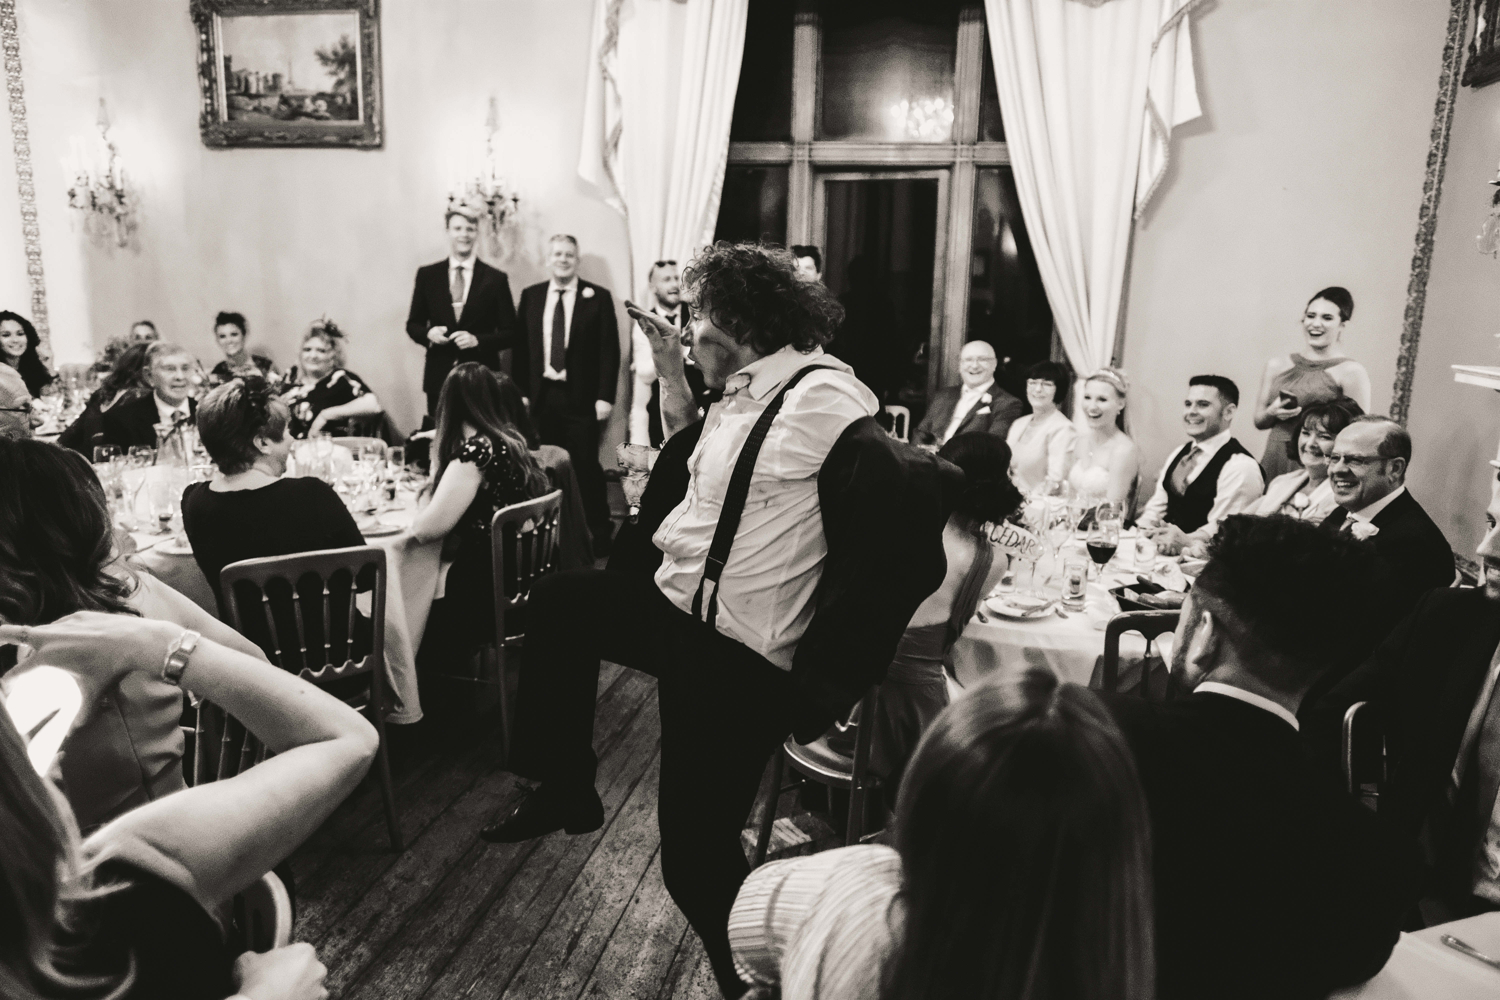 Speeches and entertainment